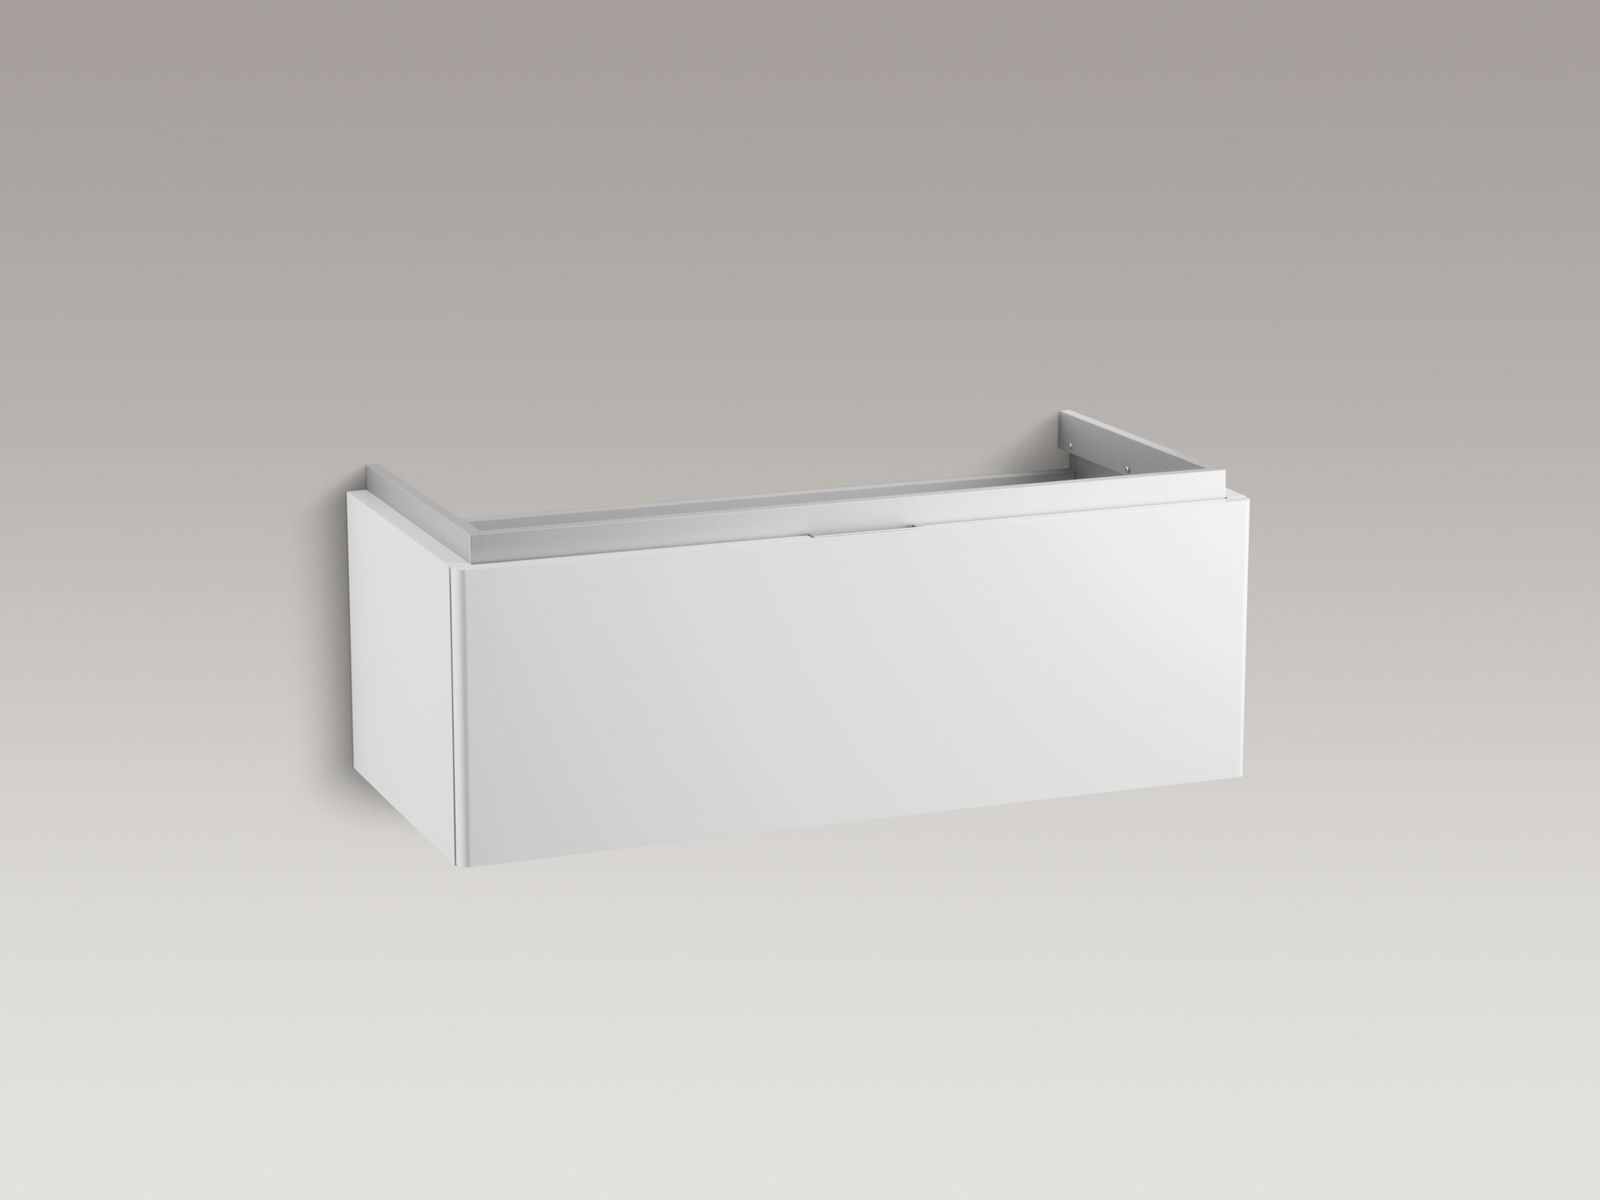 Shown with Reve® Lavatory K-5026-8-0 and standard pop-up drain, not included.